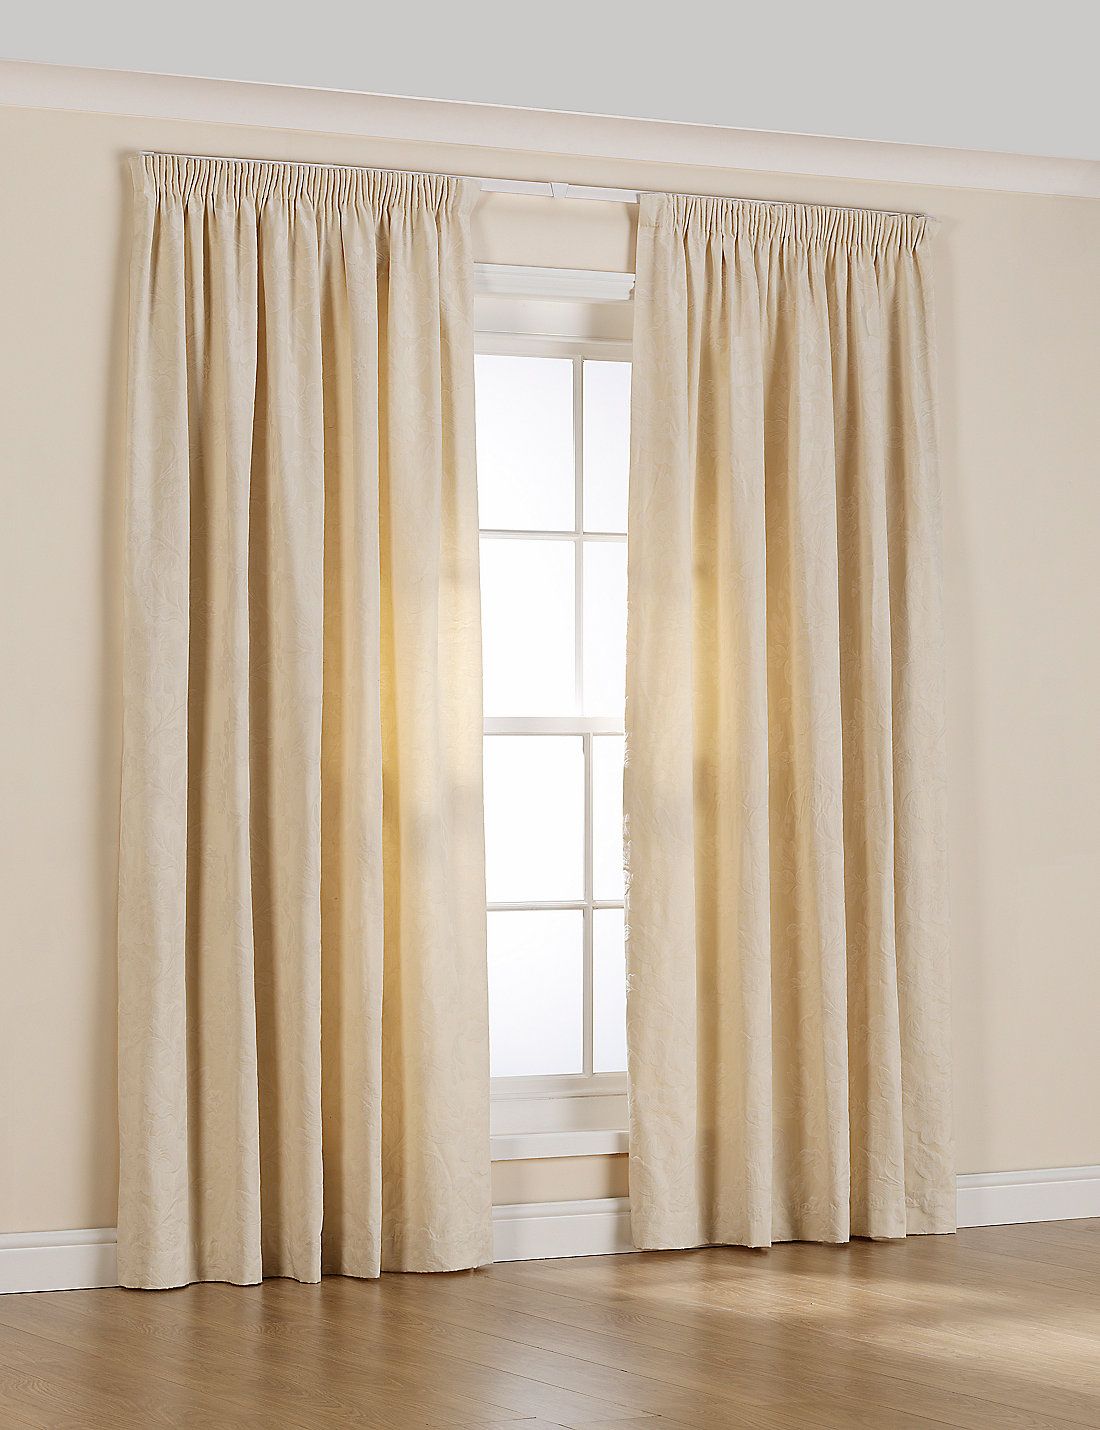 Which Colour Curtains For Cream Walls